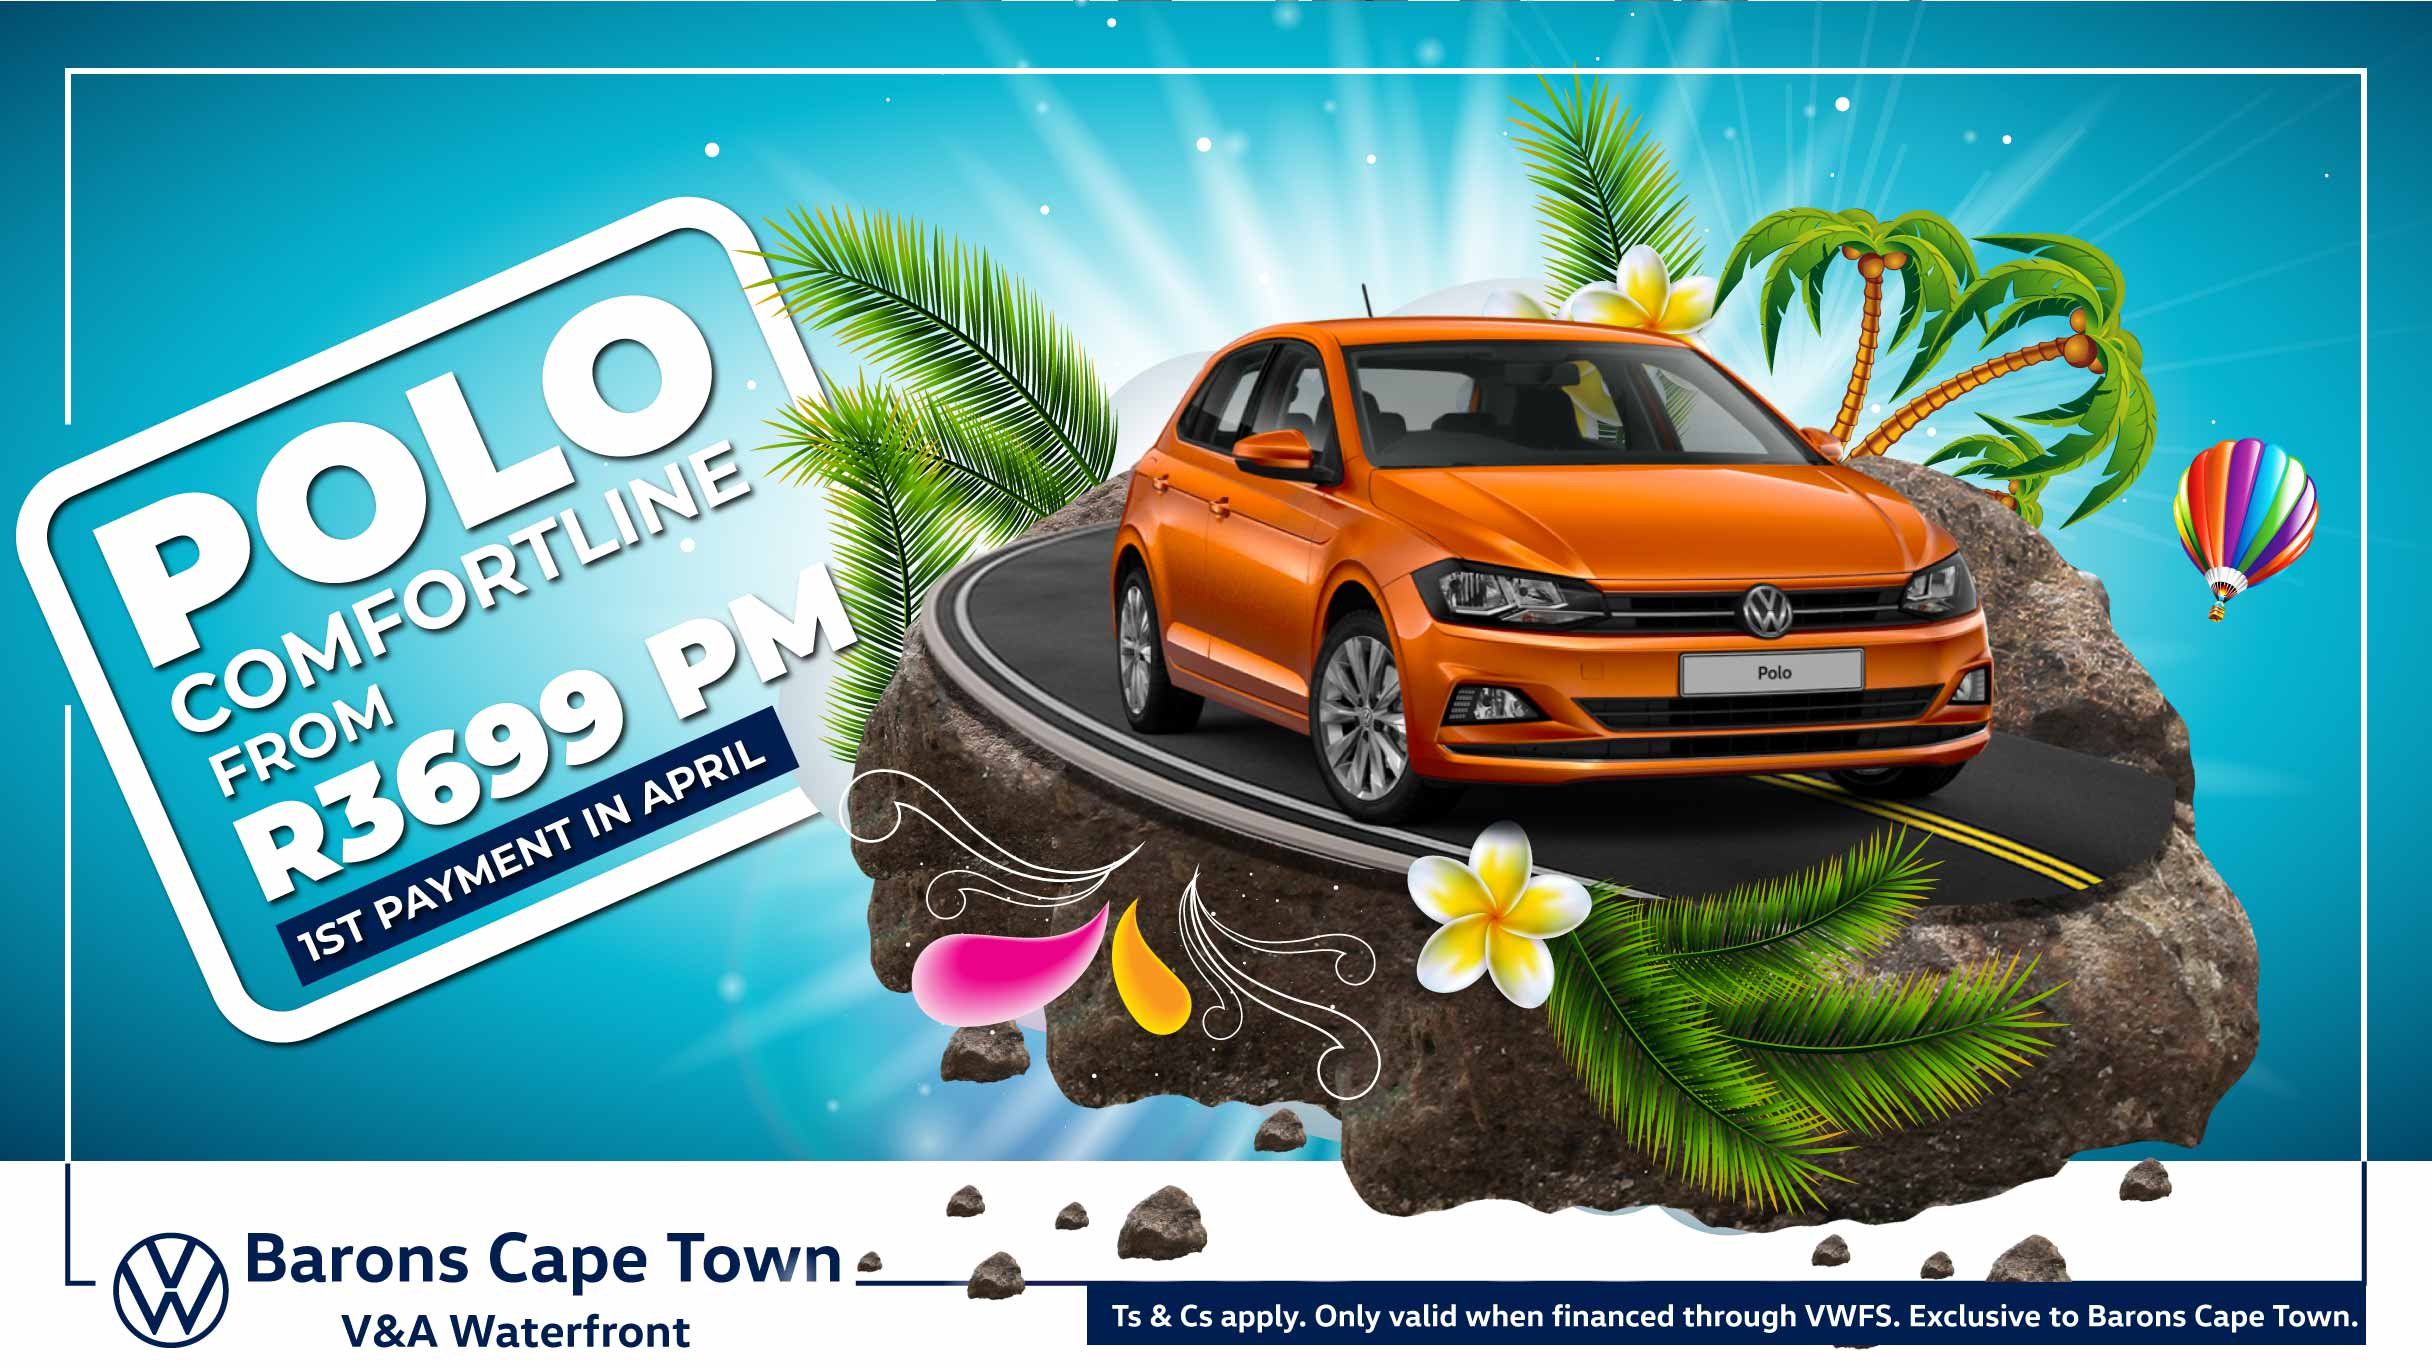 Polo Comfortline payment holiday offer